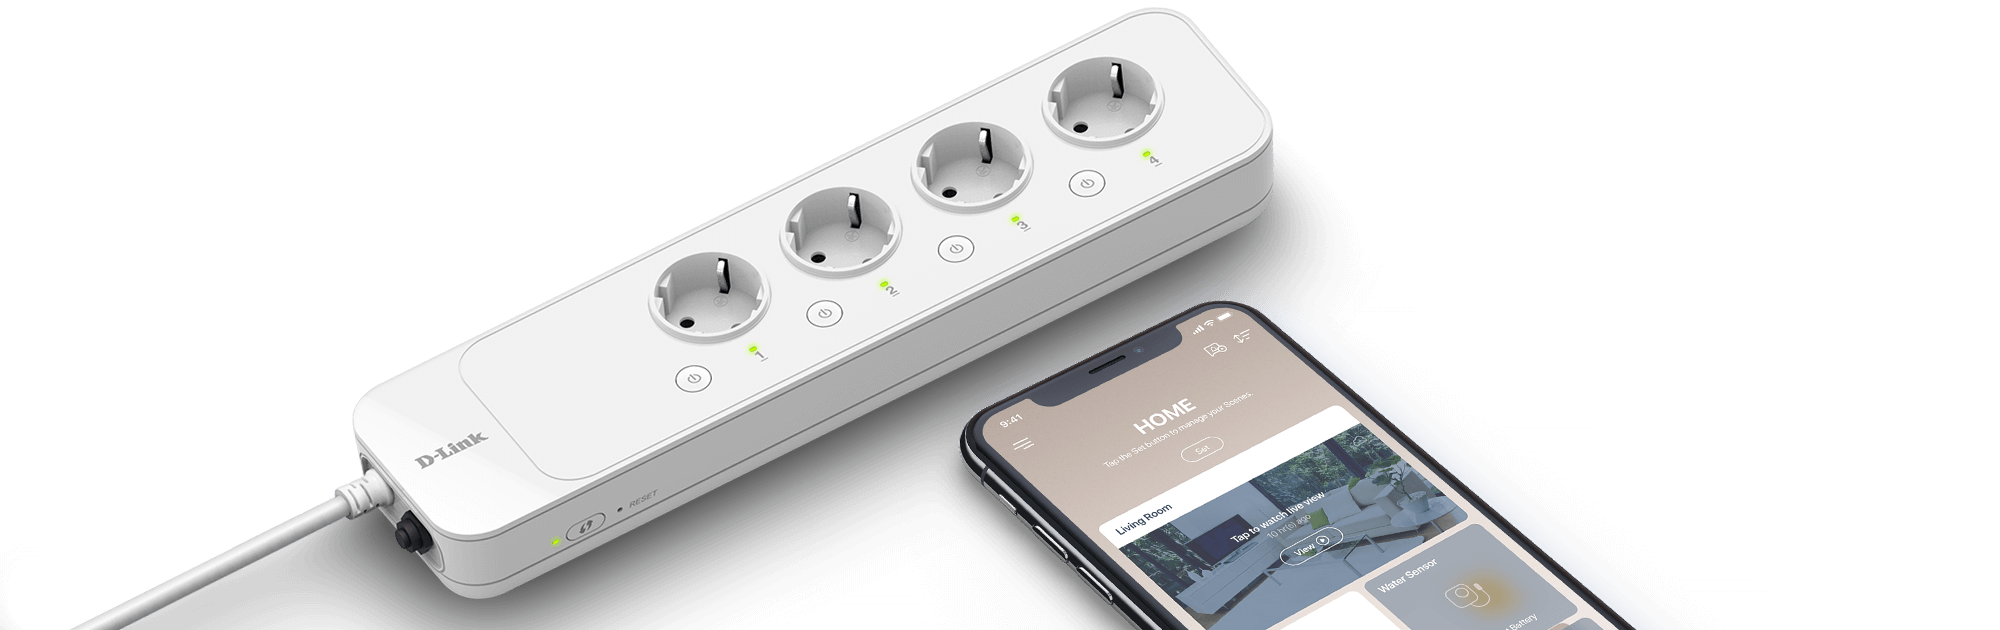 mydlink Smart Wi-Fi Power Strip for mobile management